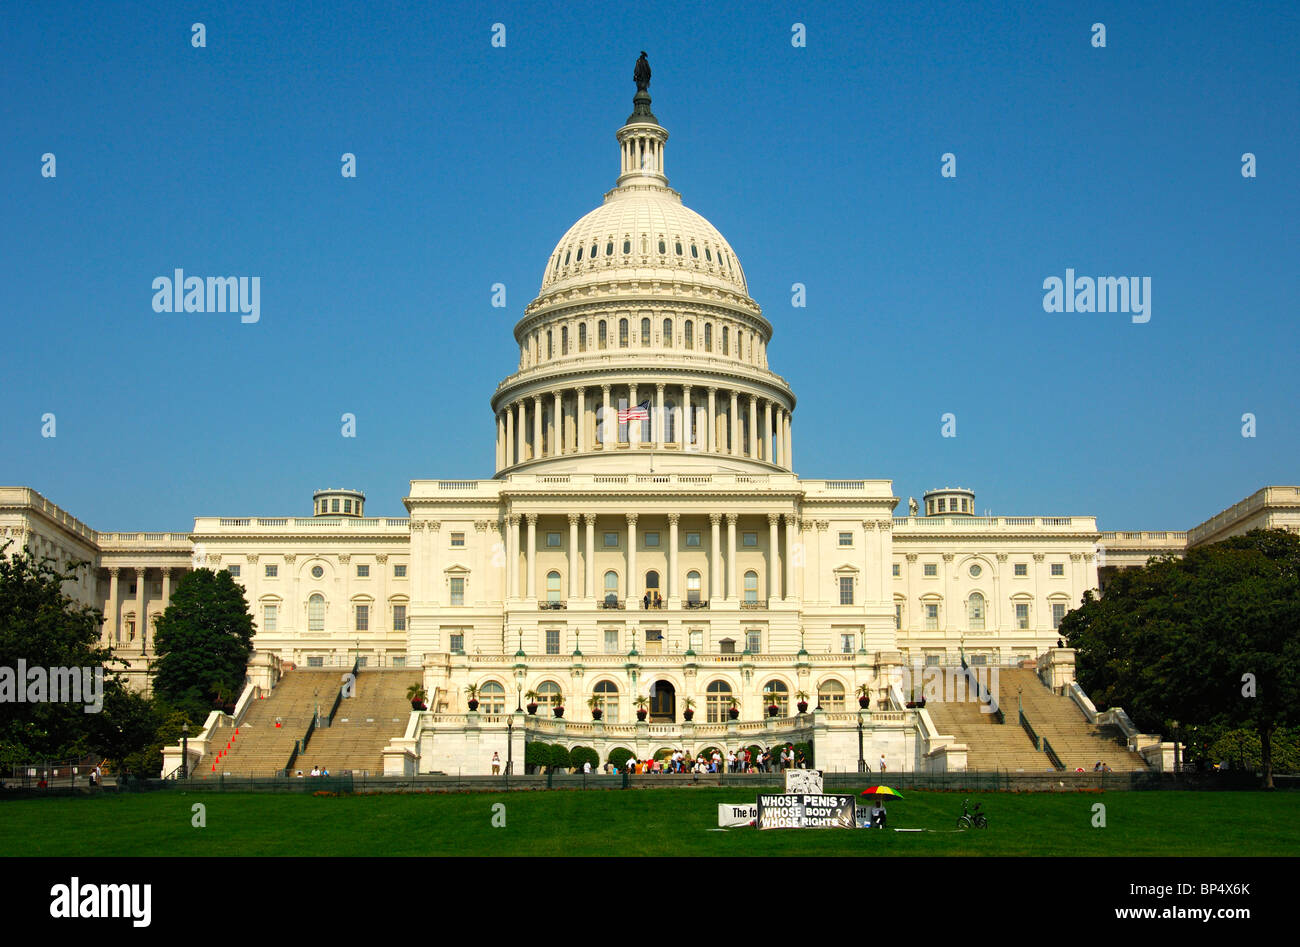 Protest against the male genital mutilation through circumcision in front of the United States Capitol, Washington, - Stock Image